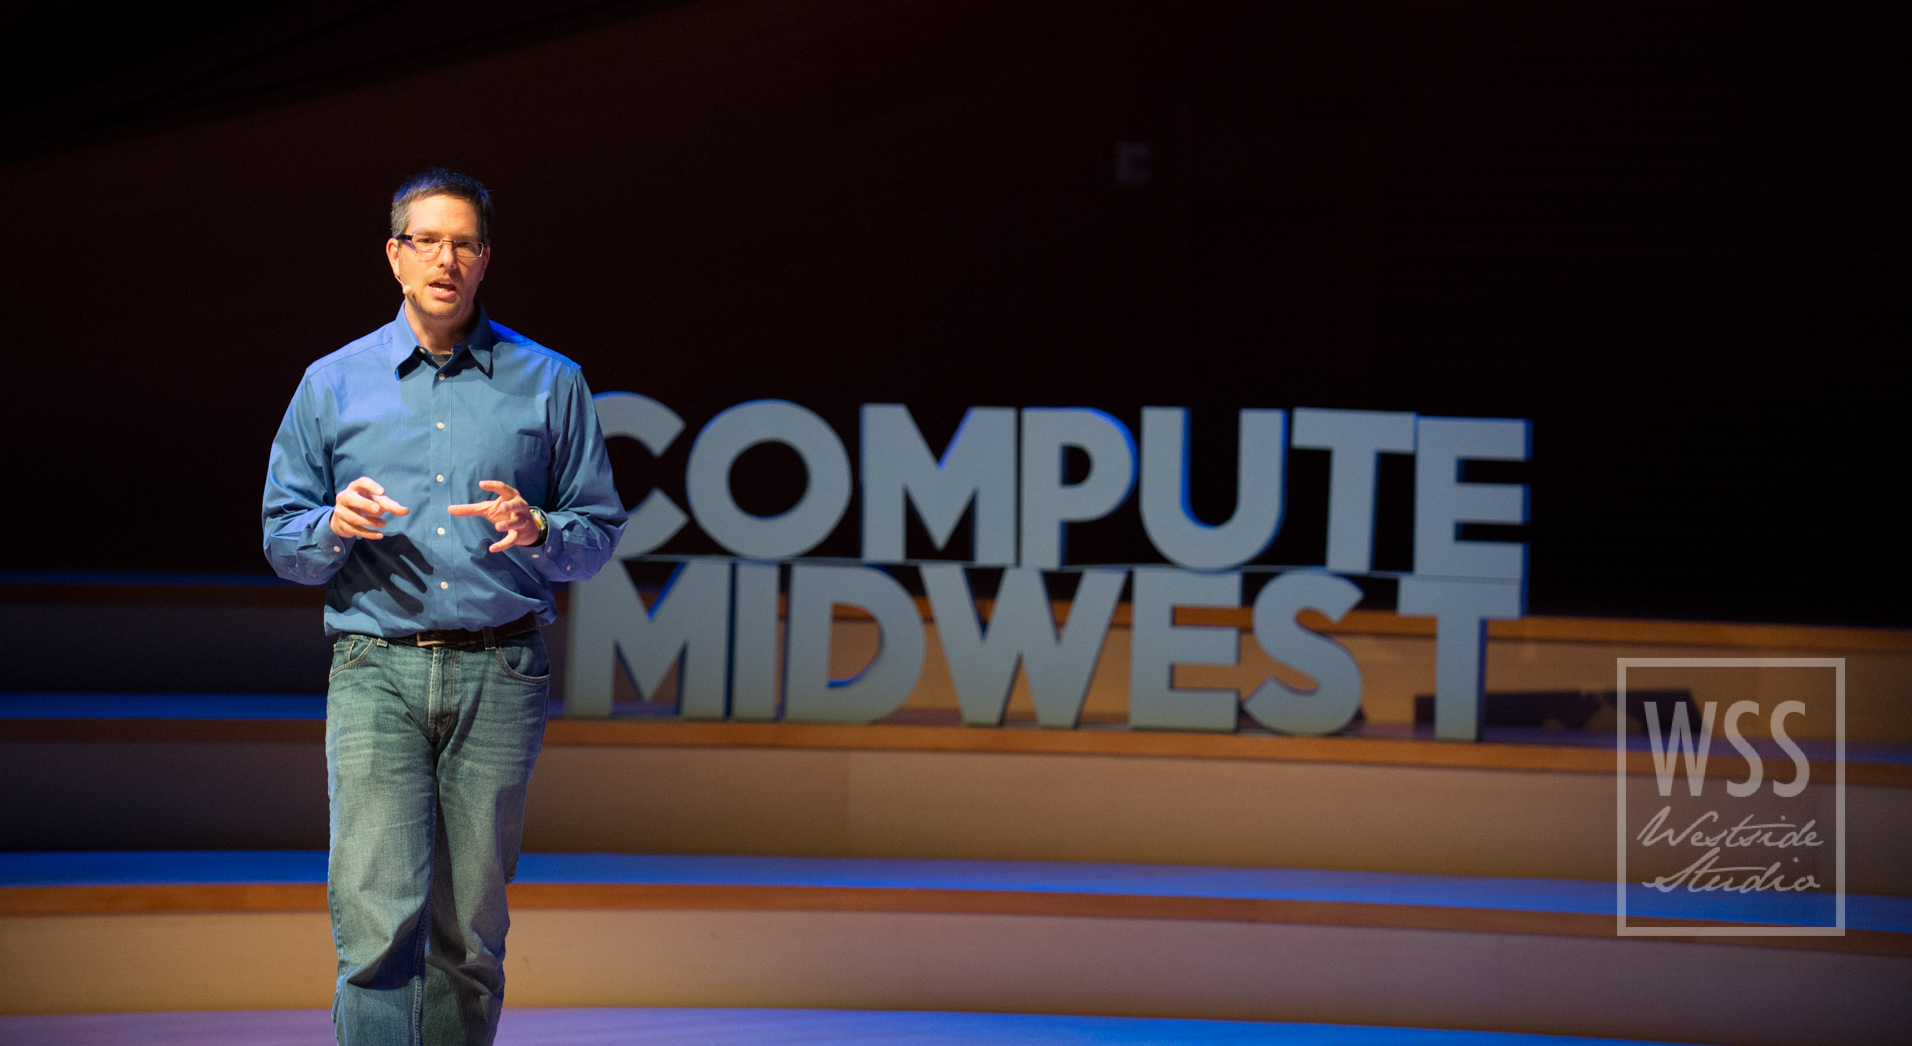 Brad Abrams, Product Manager For The Google Cloud Platform Team - Speaks At Compute Midwest